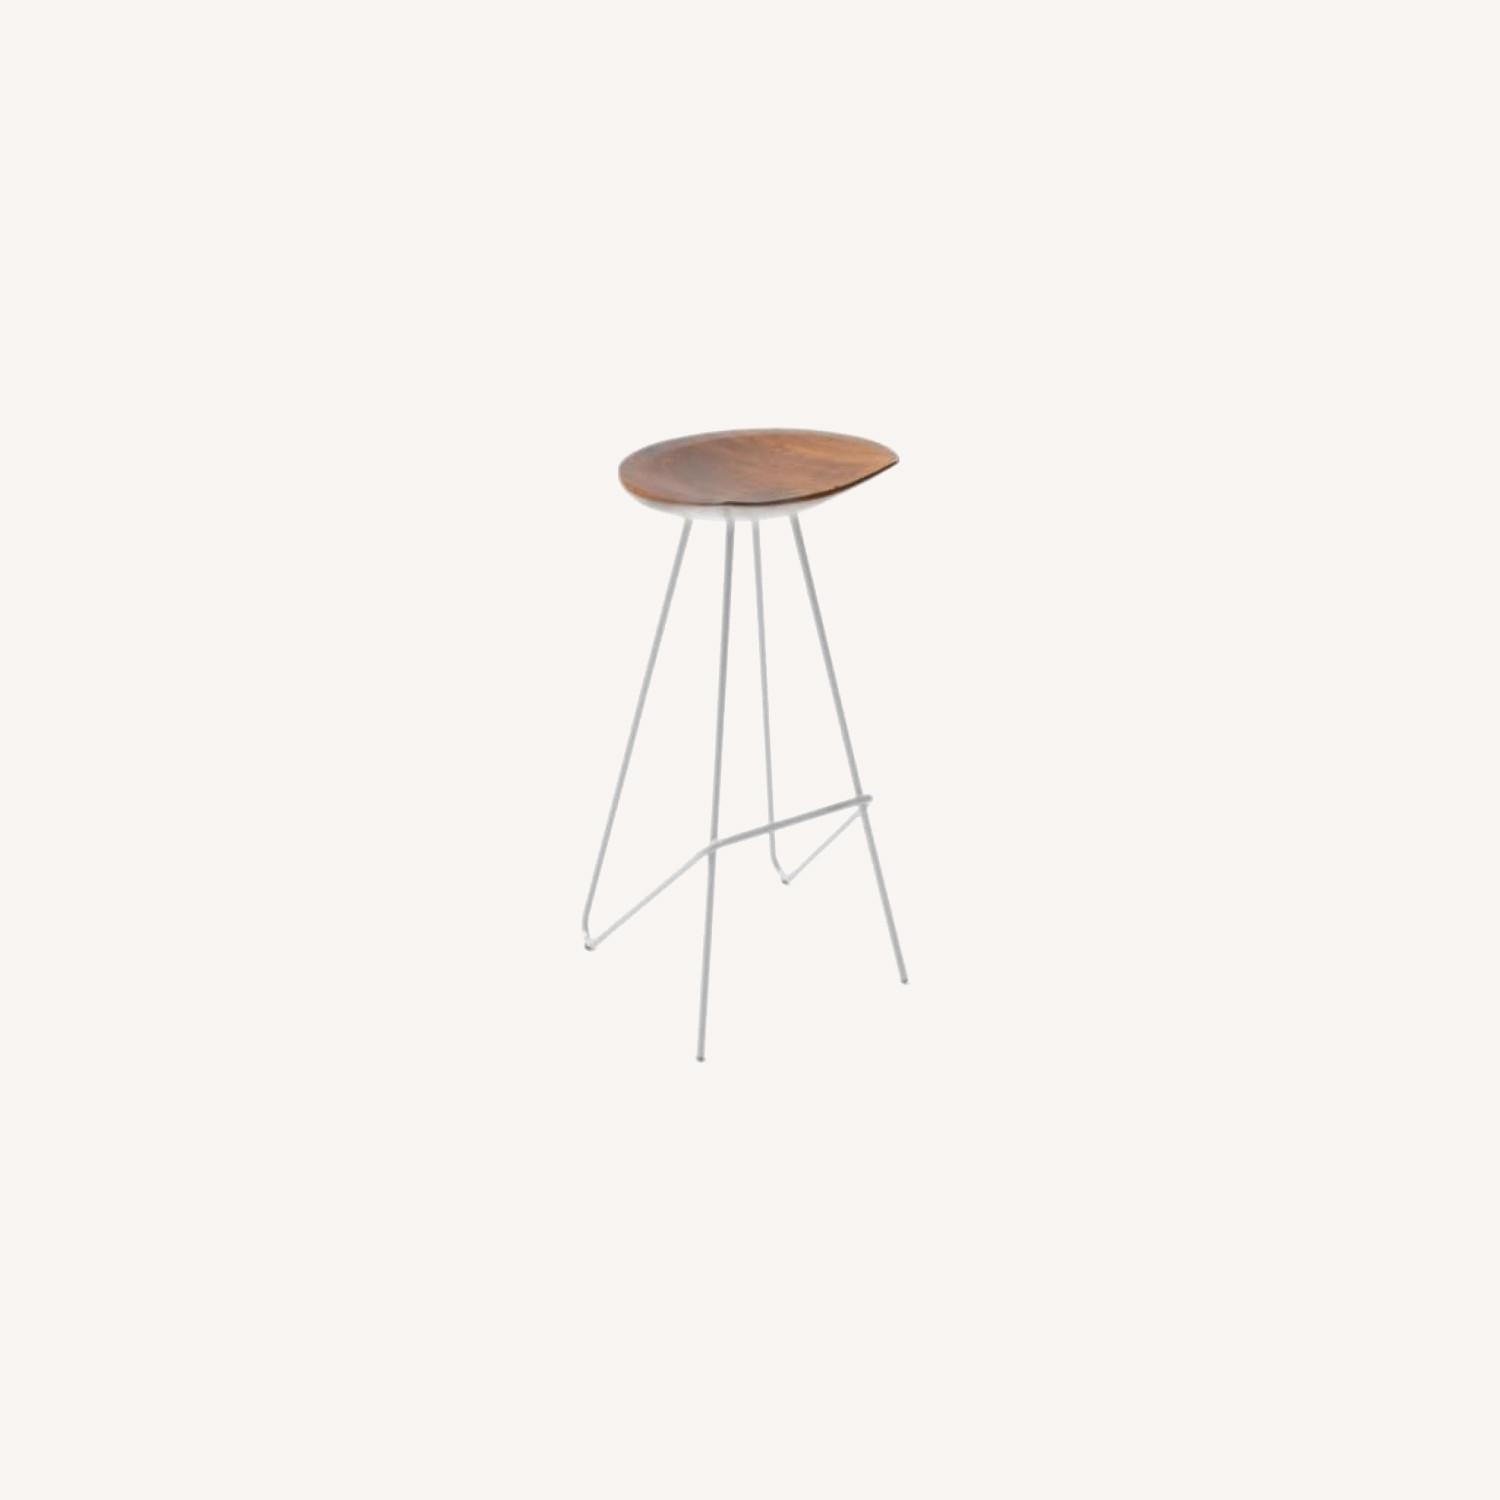 From The Source Perch Counter Stools - Set of 2 - image-0